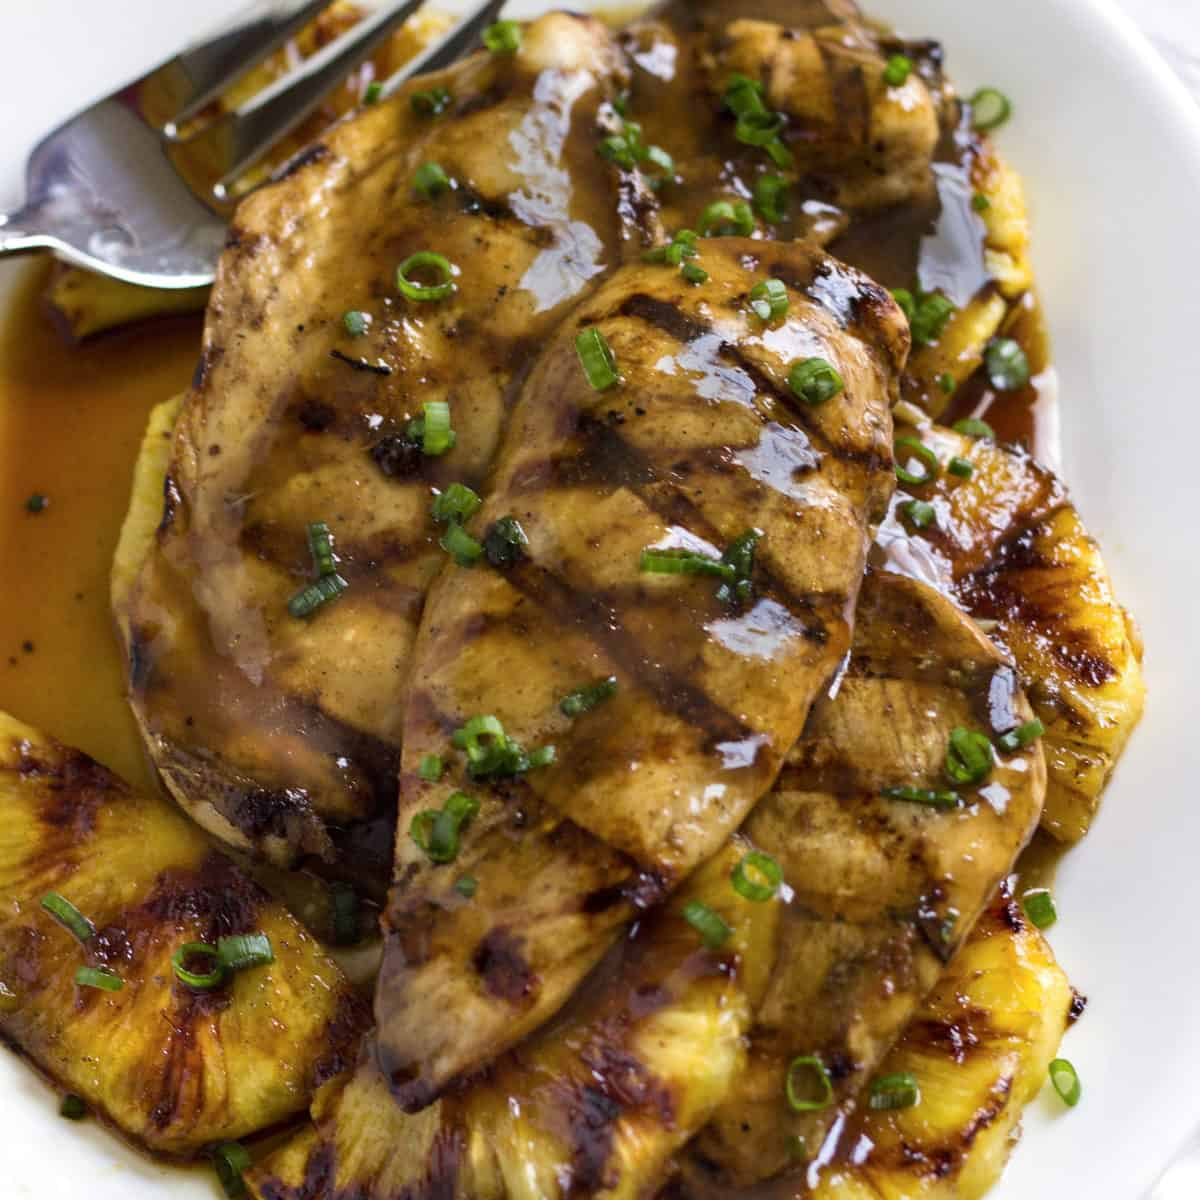 grilled pineapple and chicken with sauce and green onions